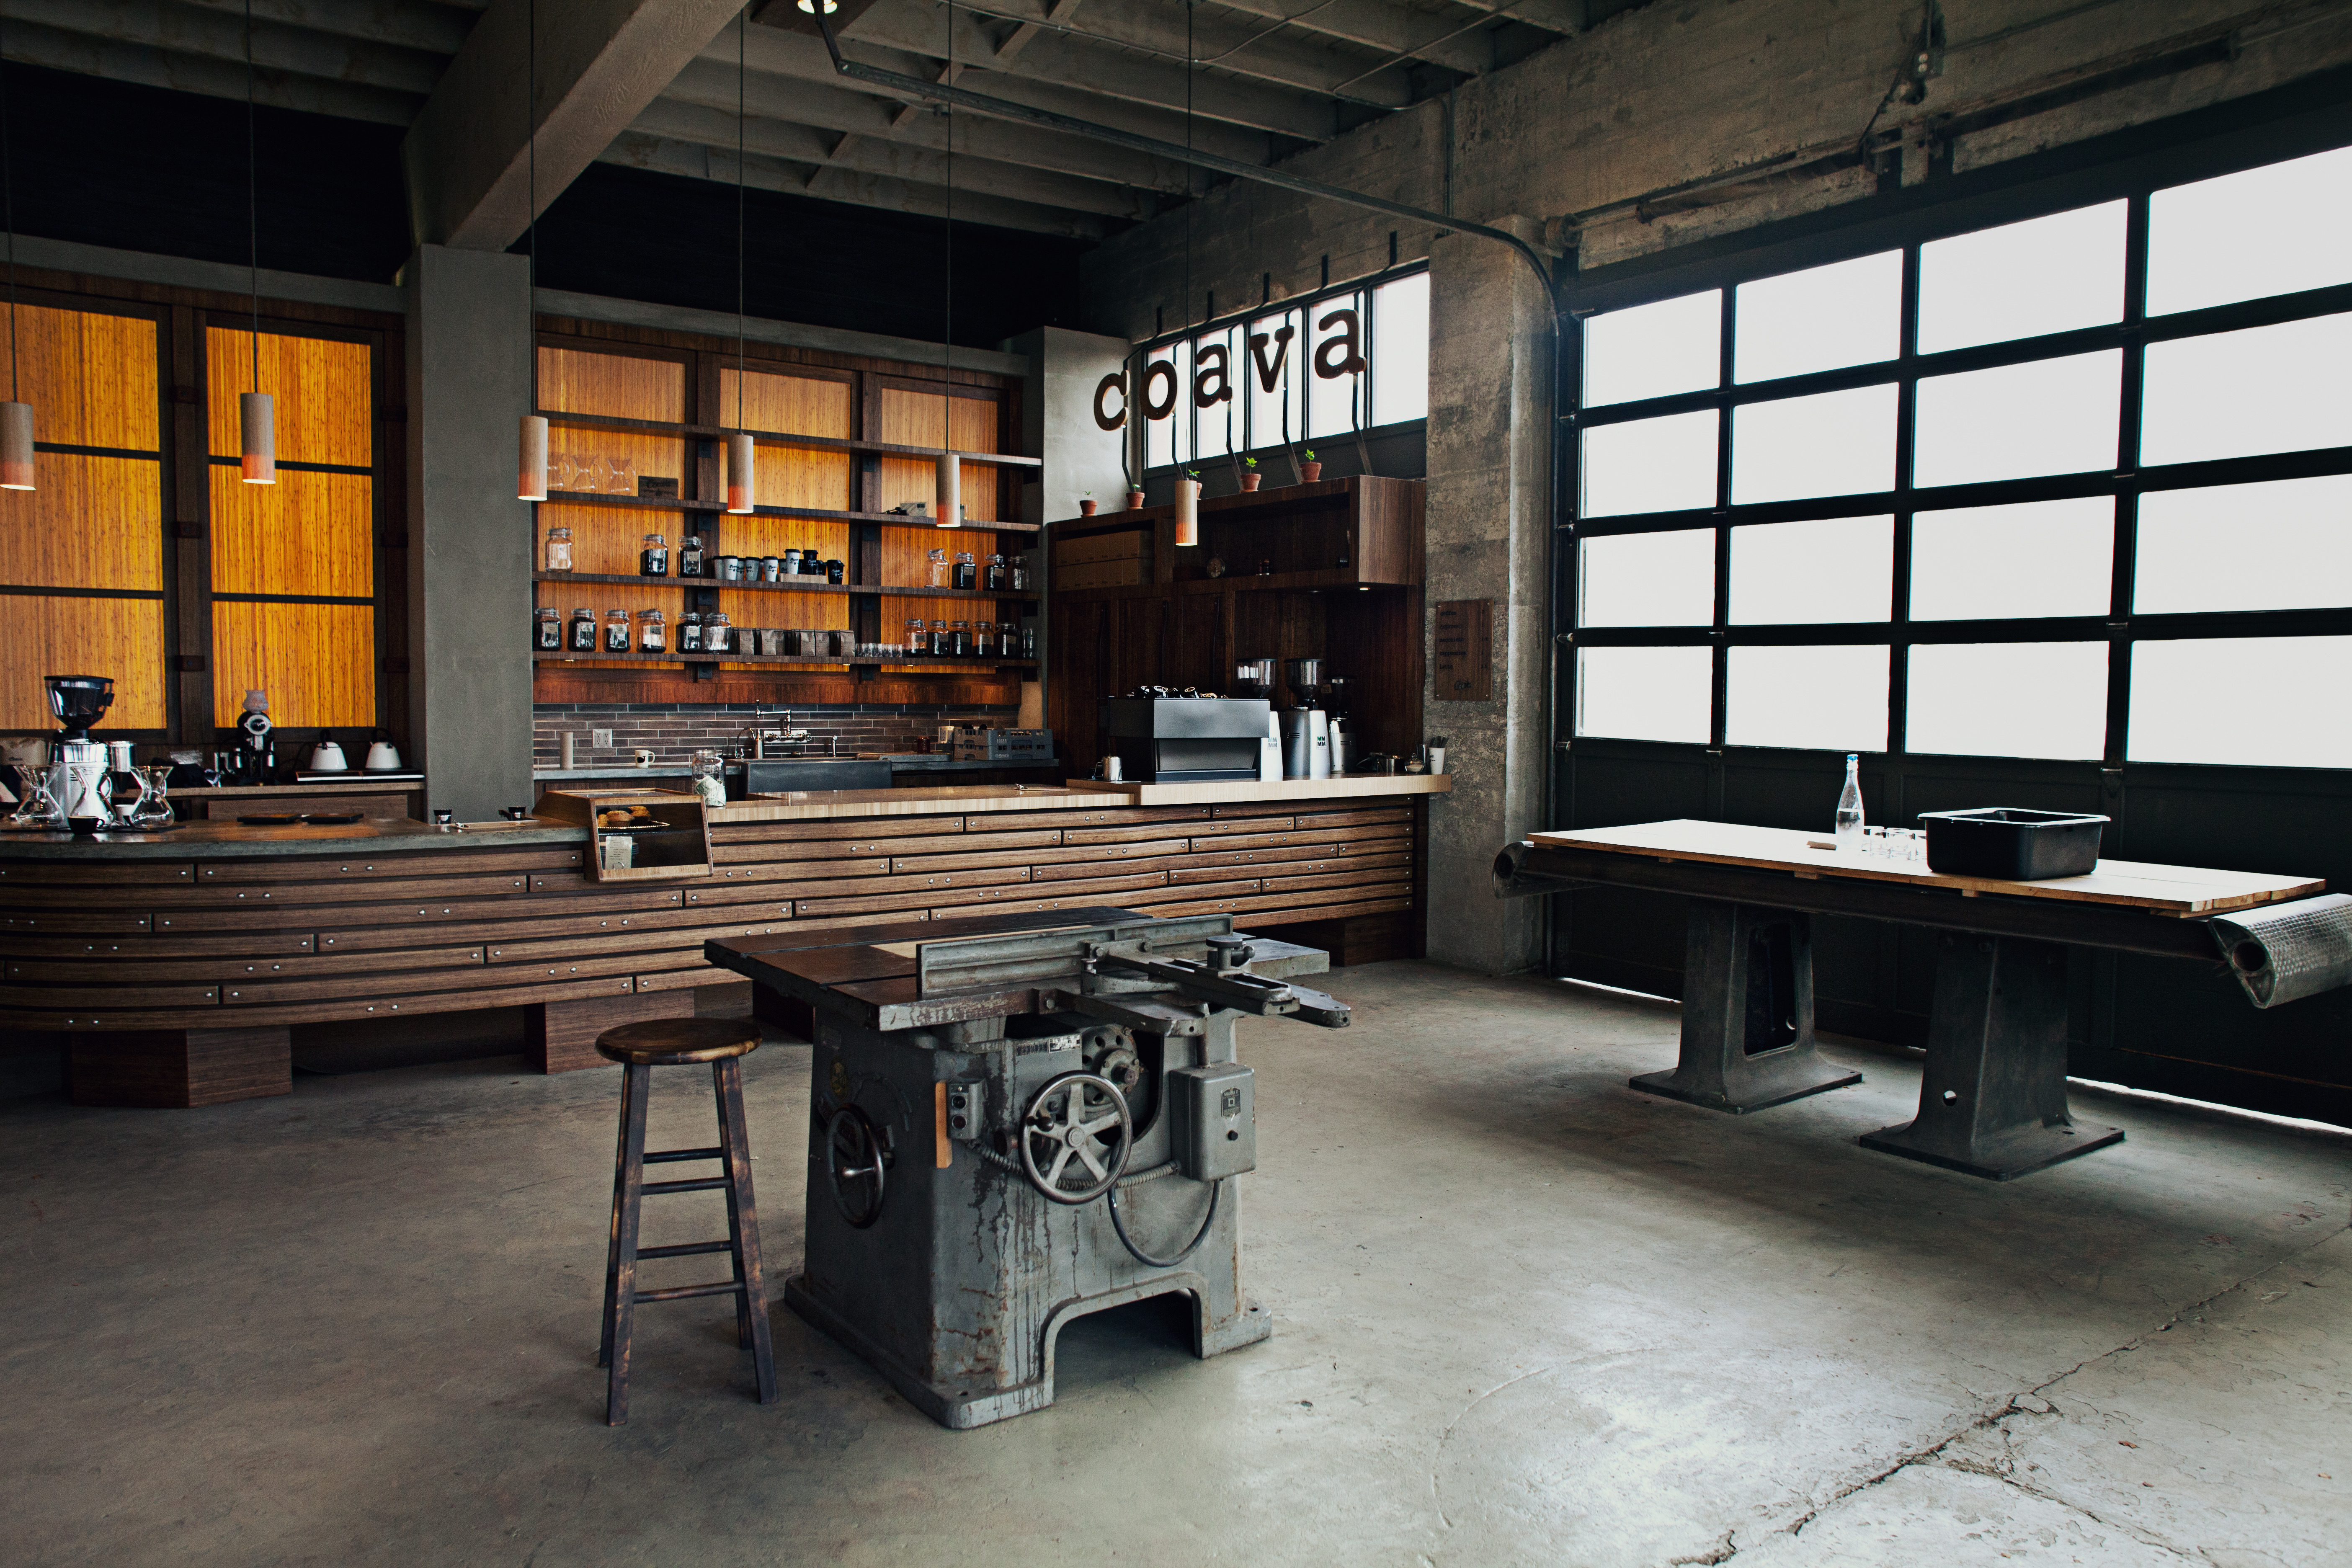 The BestDesigned Coffee Bars Roasters And Shops Across America - Coffee shops around world eye catching interior design details